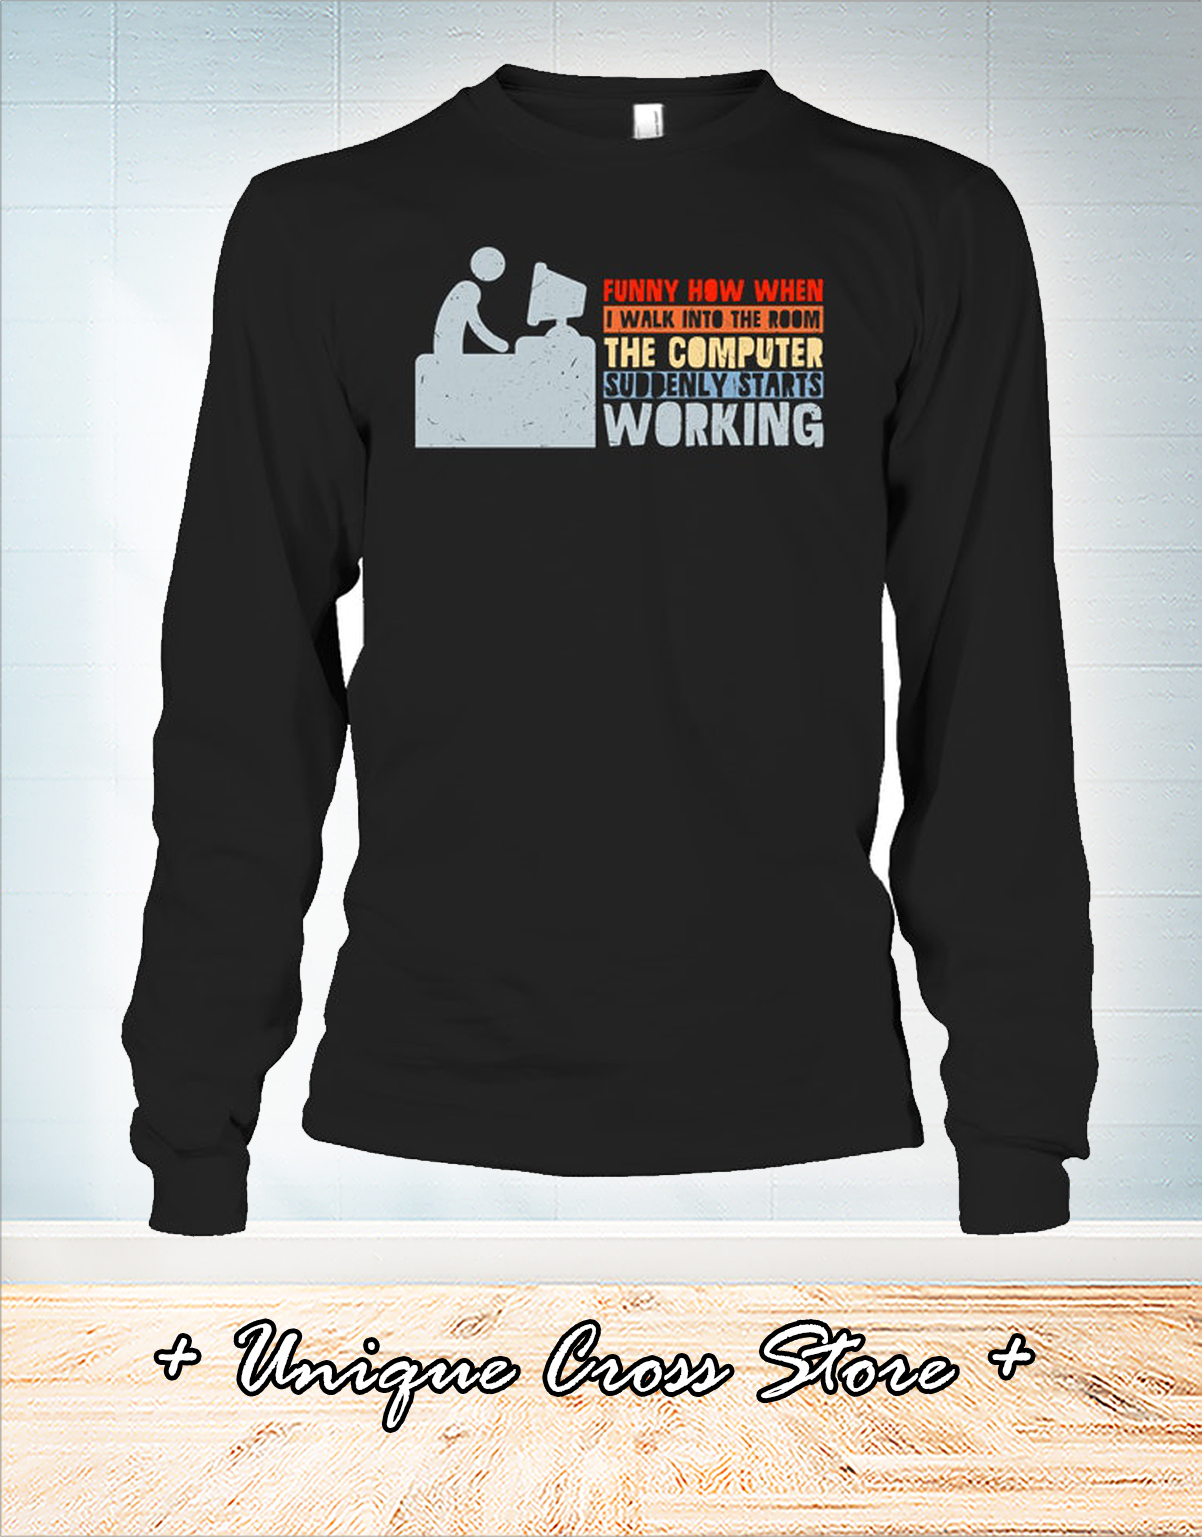 Funny how when I walk into the room the computer suddenly starts working shirt